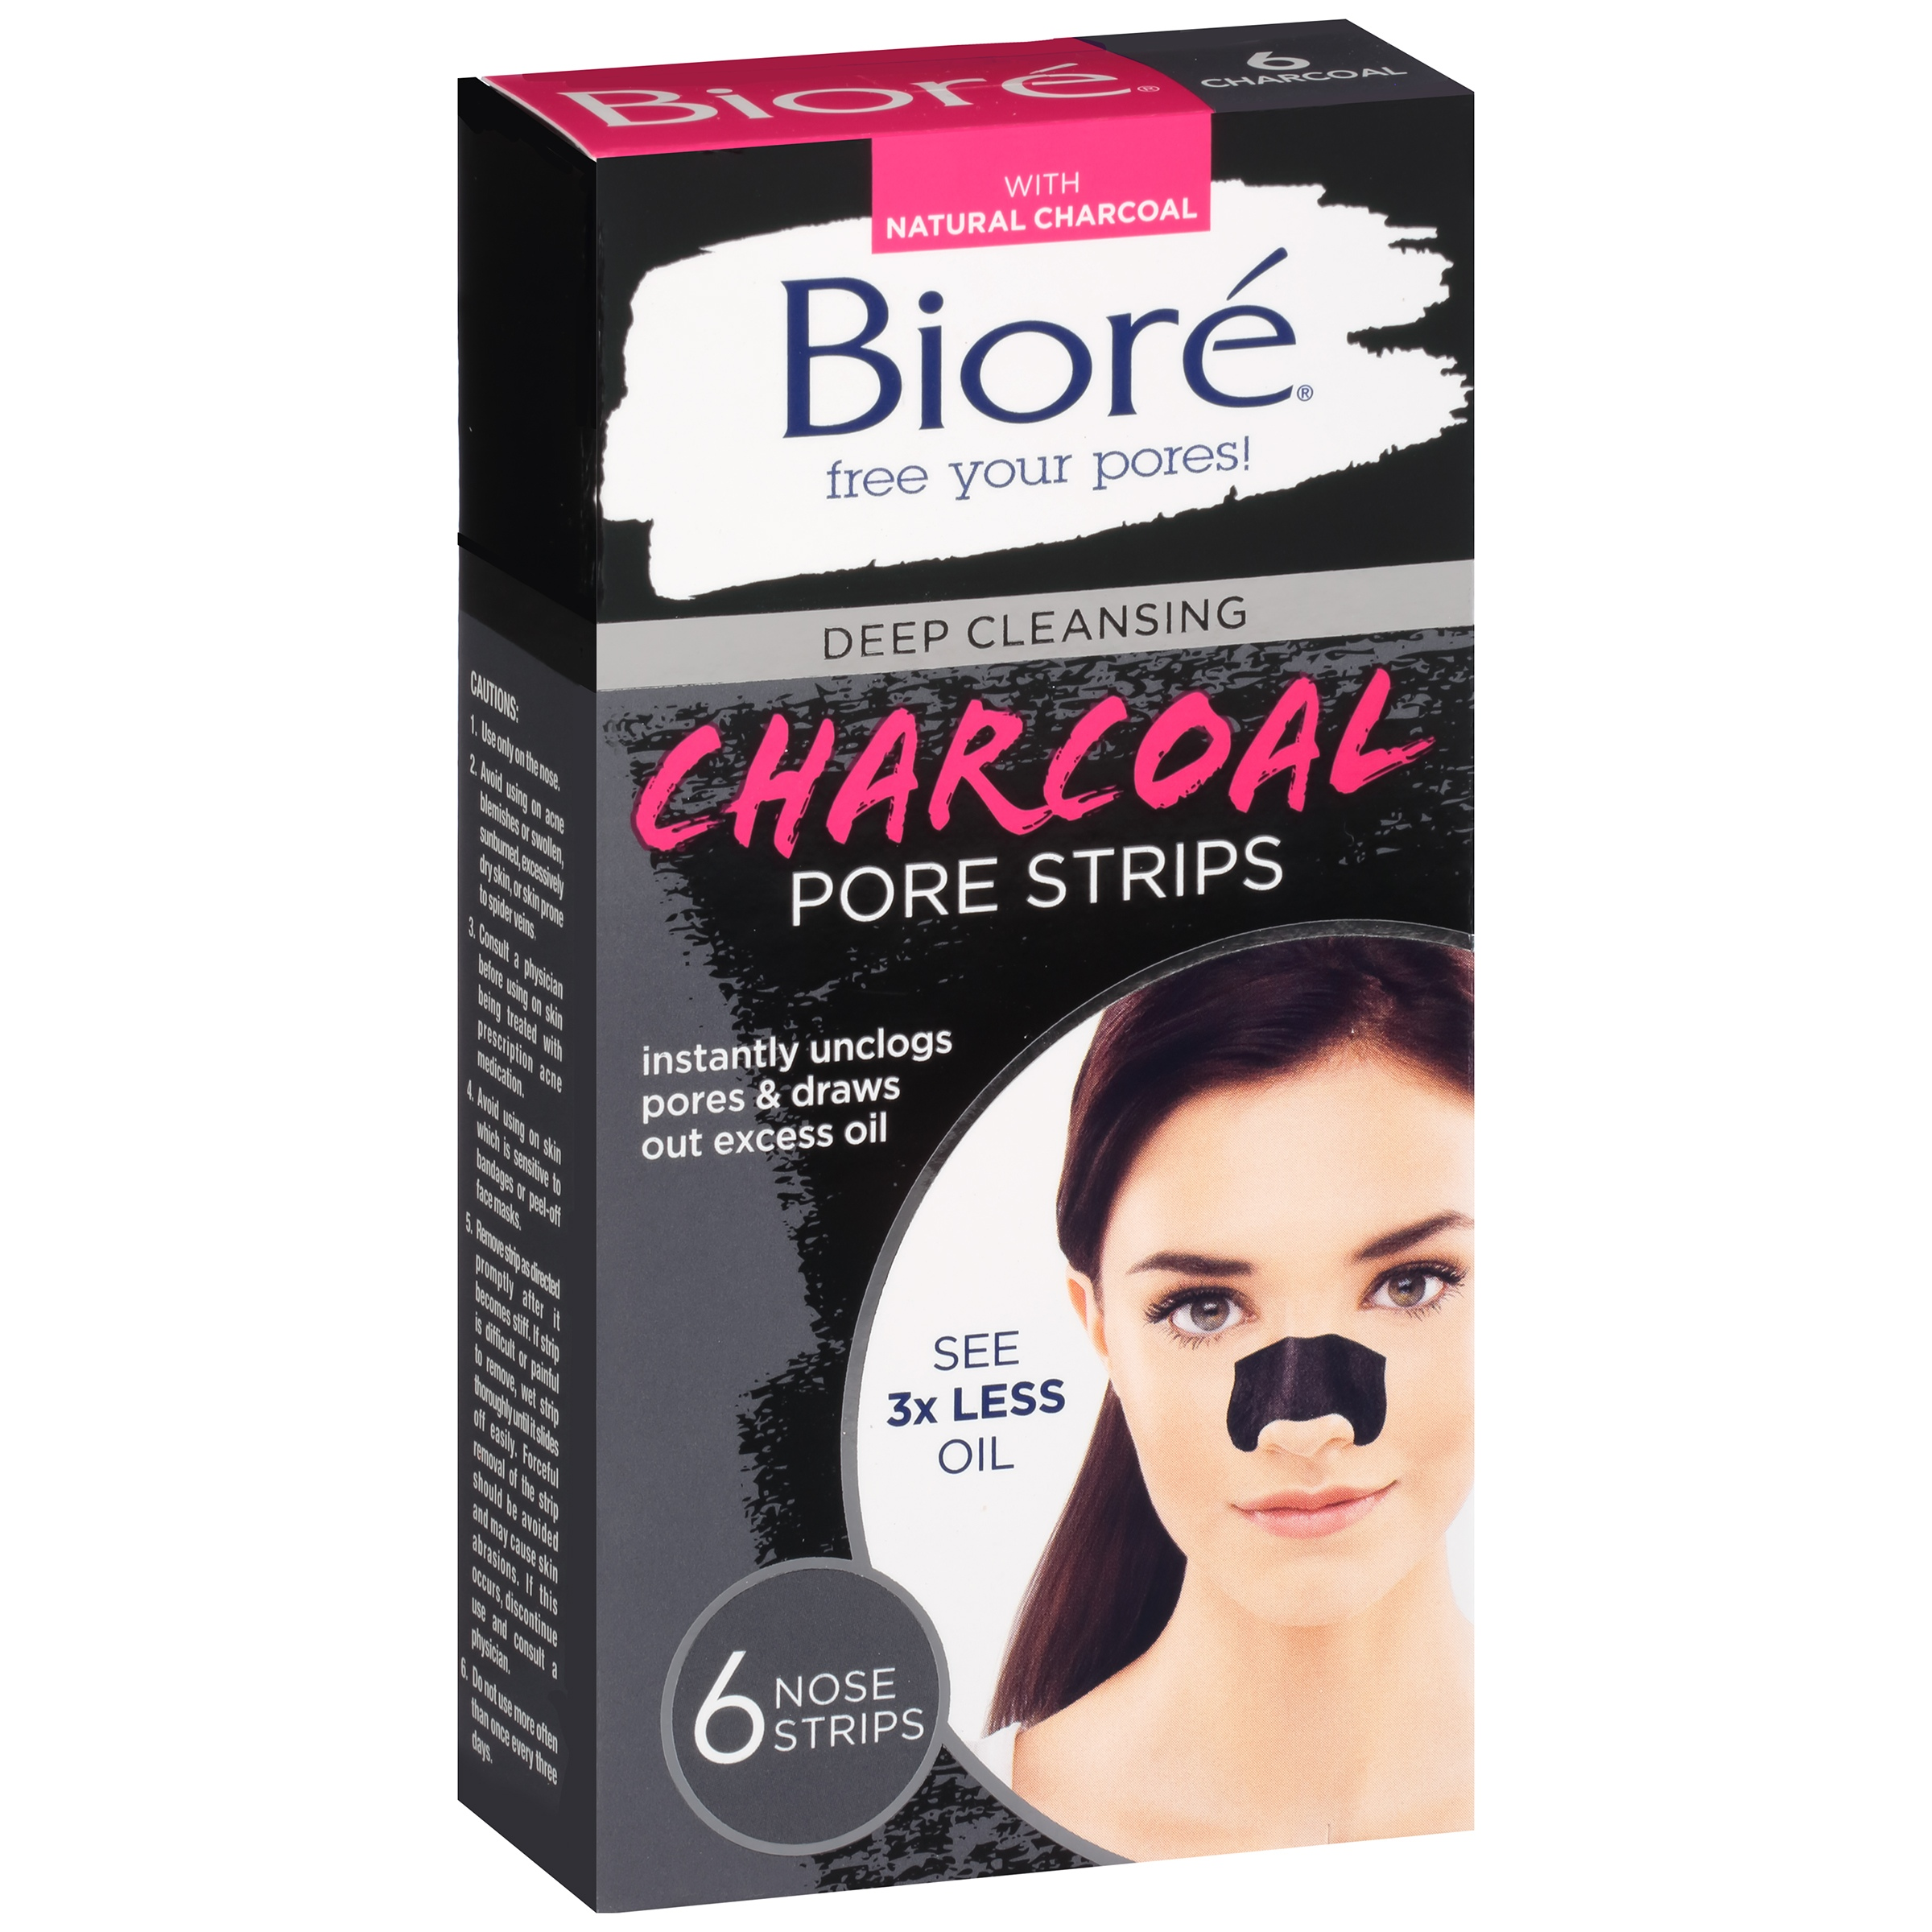 Biore Deep Cleansing Charcoal Pore Strips, 6 ct - Walmart.com